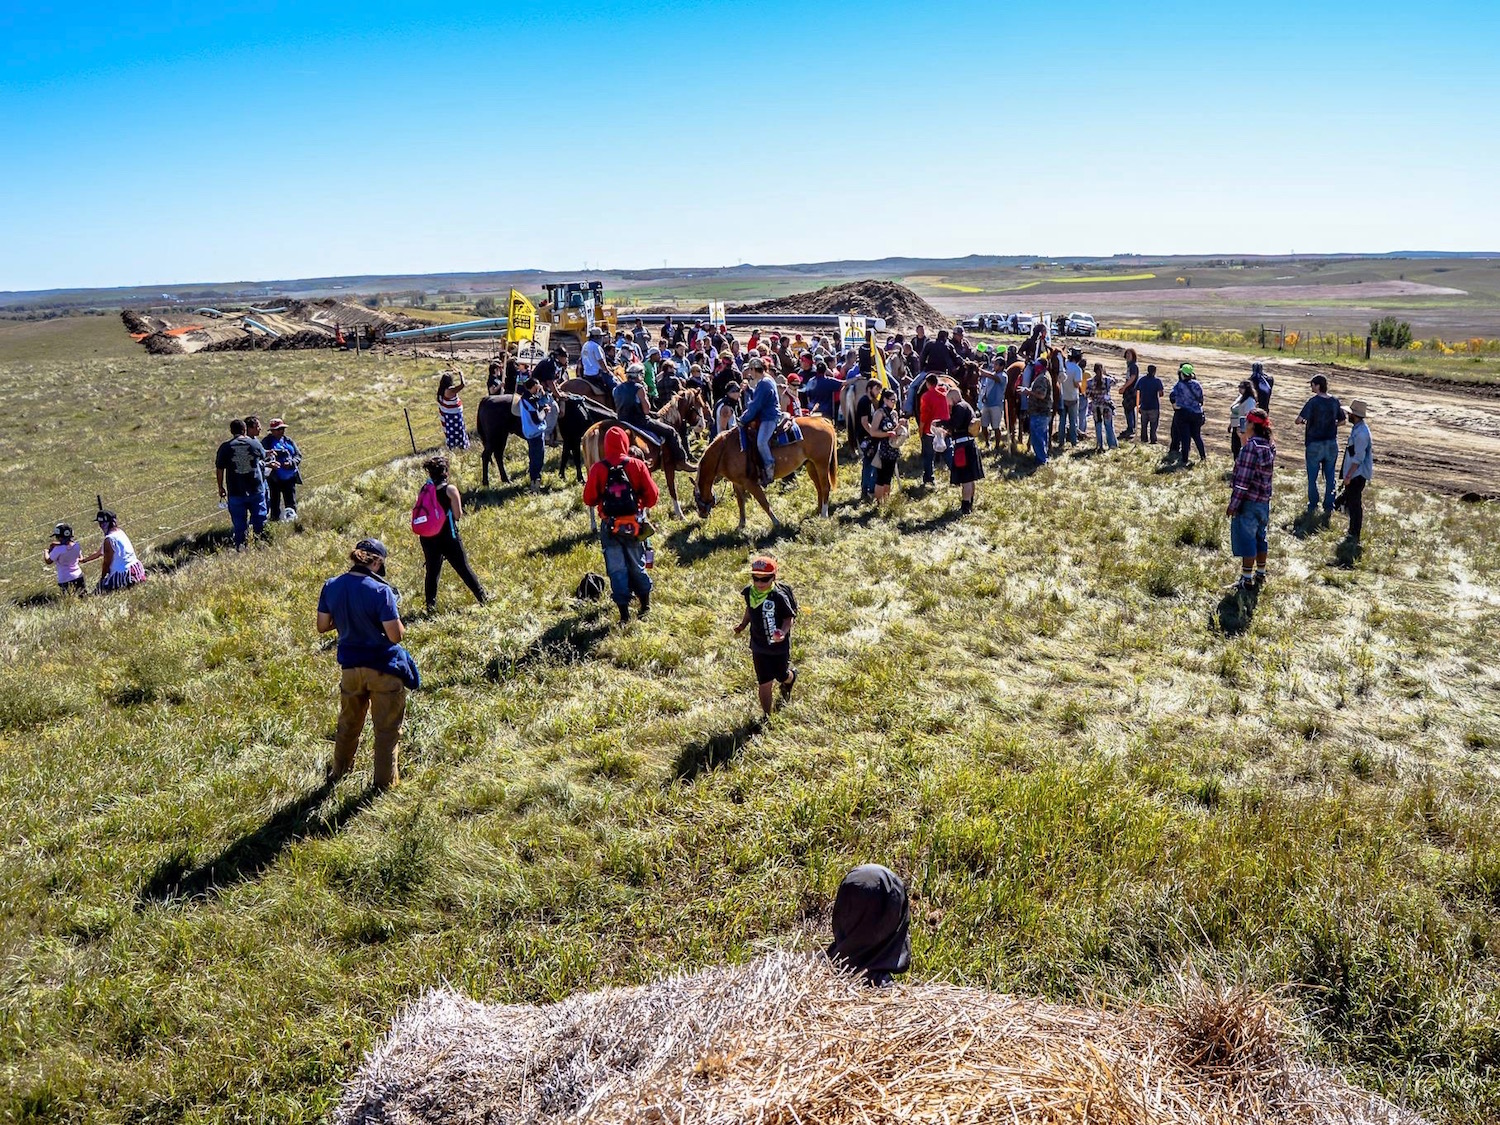 Mary Annette Pember: Water protectors rounded up for praying